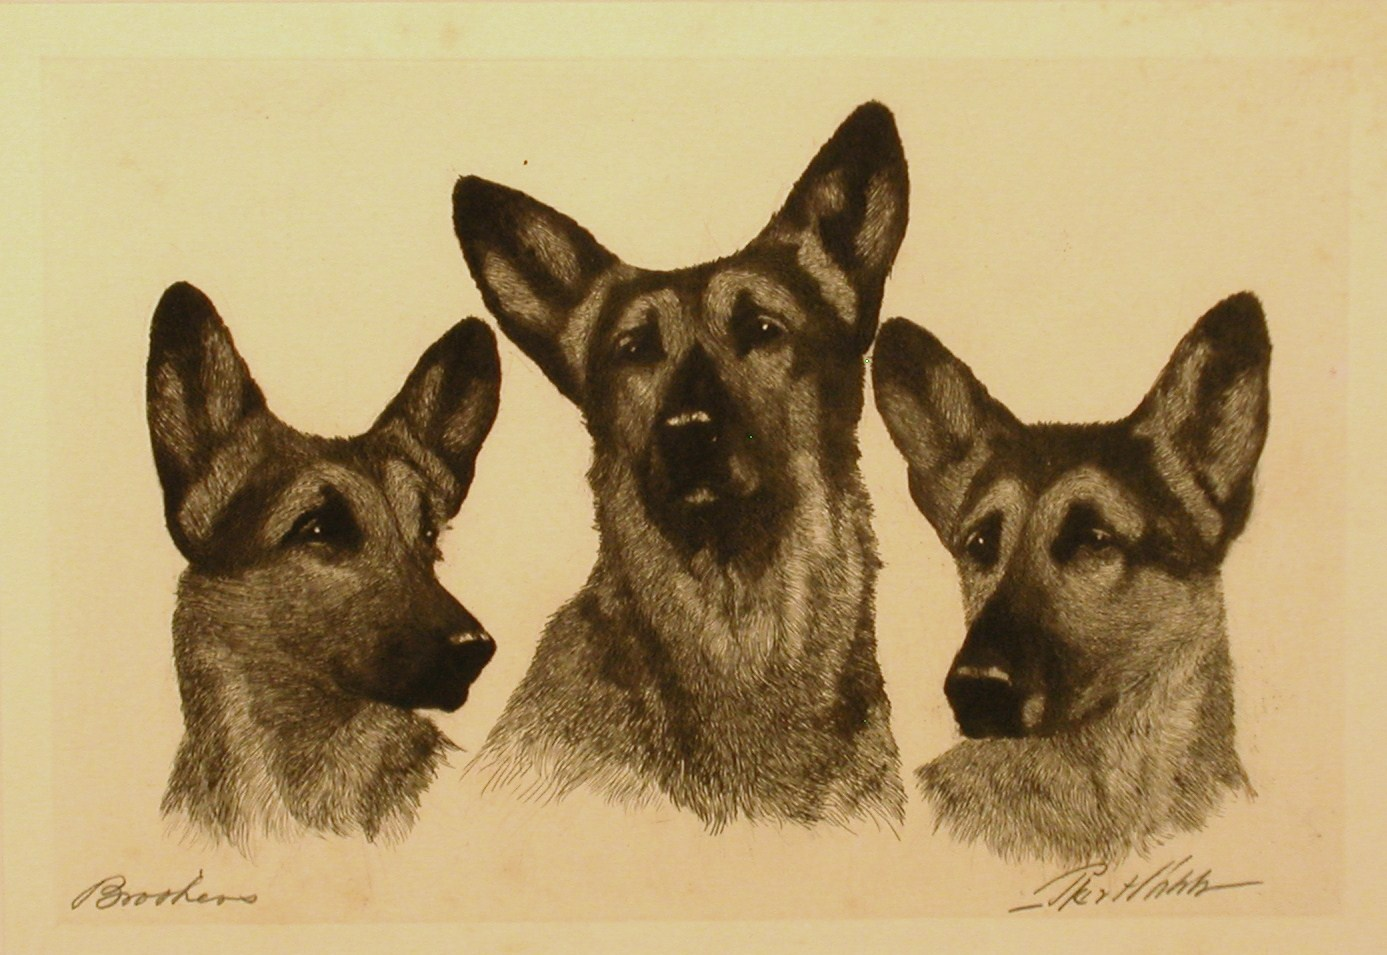 Click to see full size: German Shepherds Brookers by Bert Cobb (1869-1935)- German Shepherds Brookers by Bert Cobb (1869-1935)